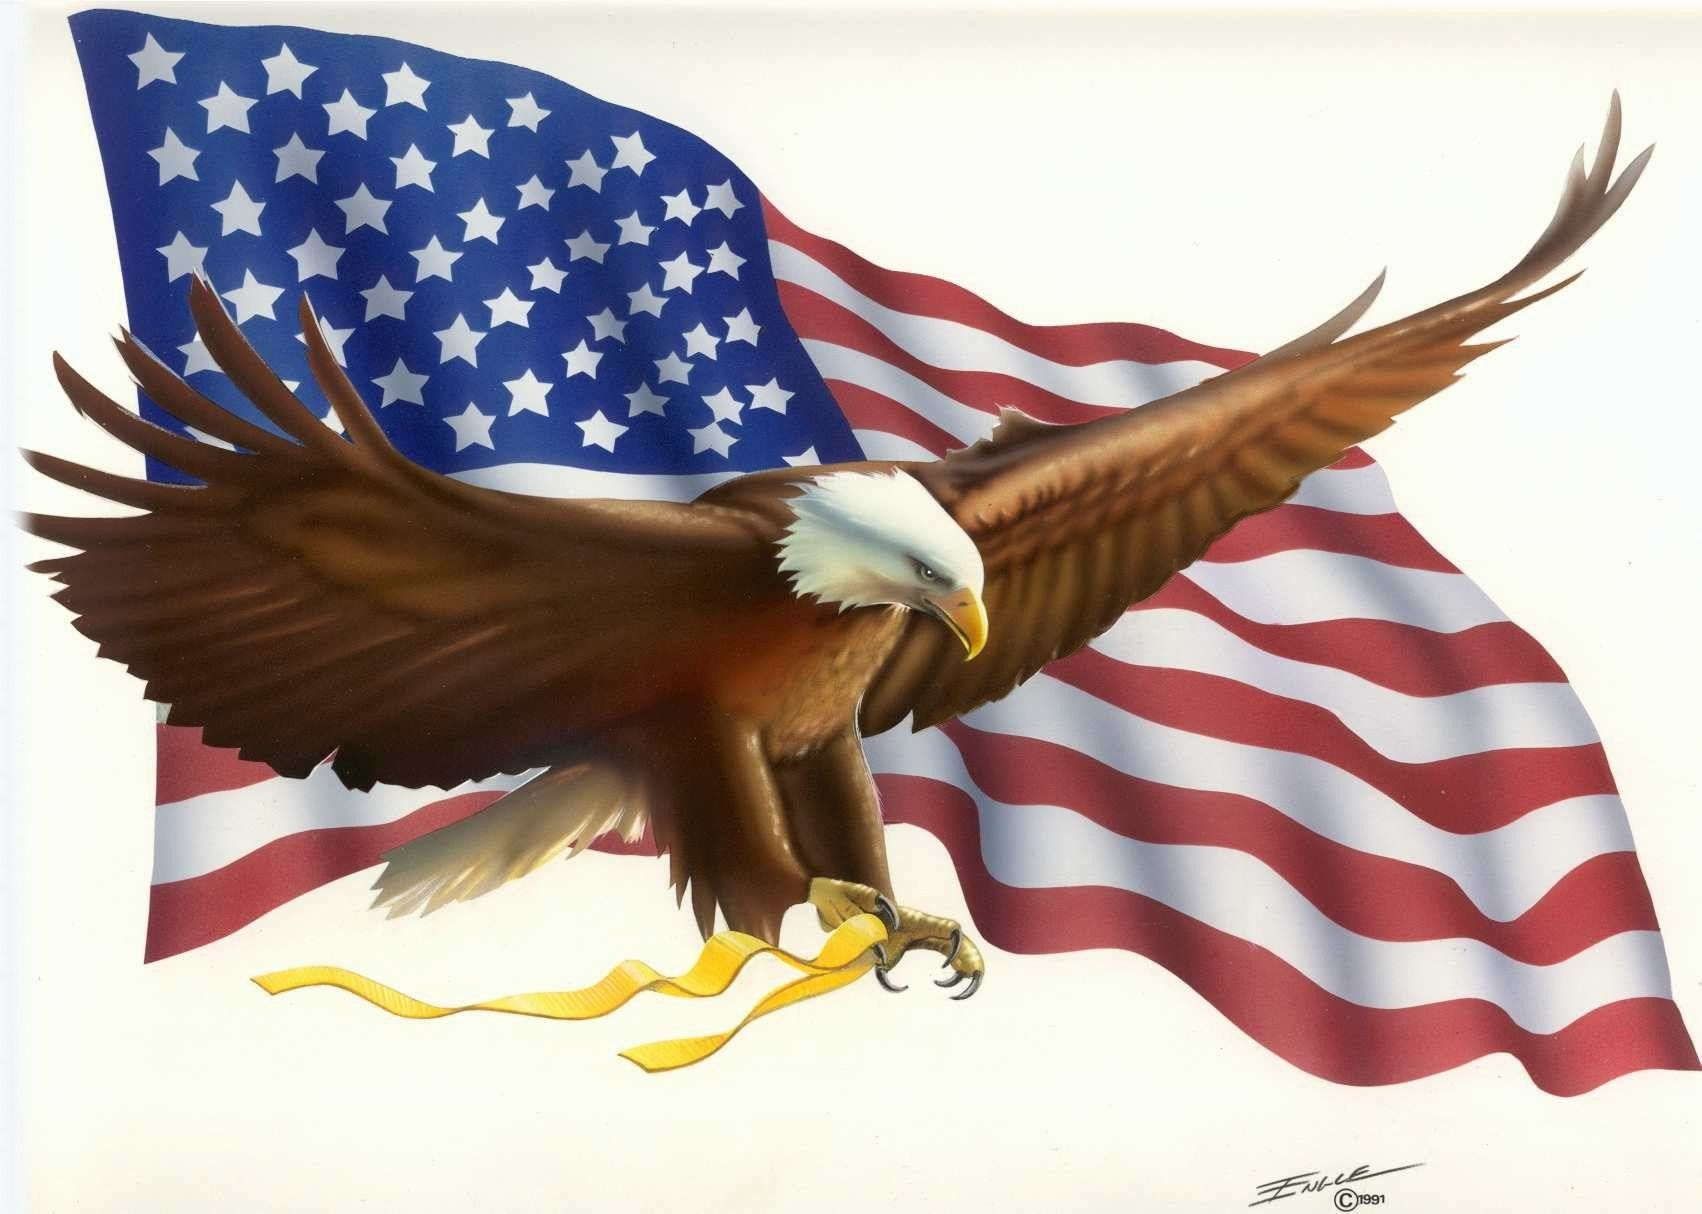 Wallpaper Of The Day: Eagle And Flag.